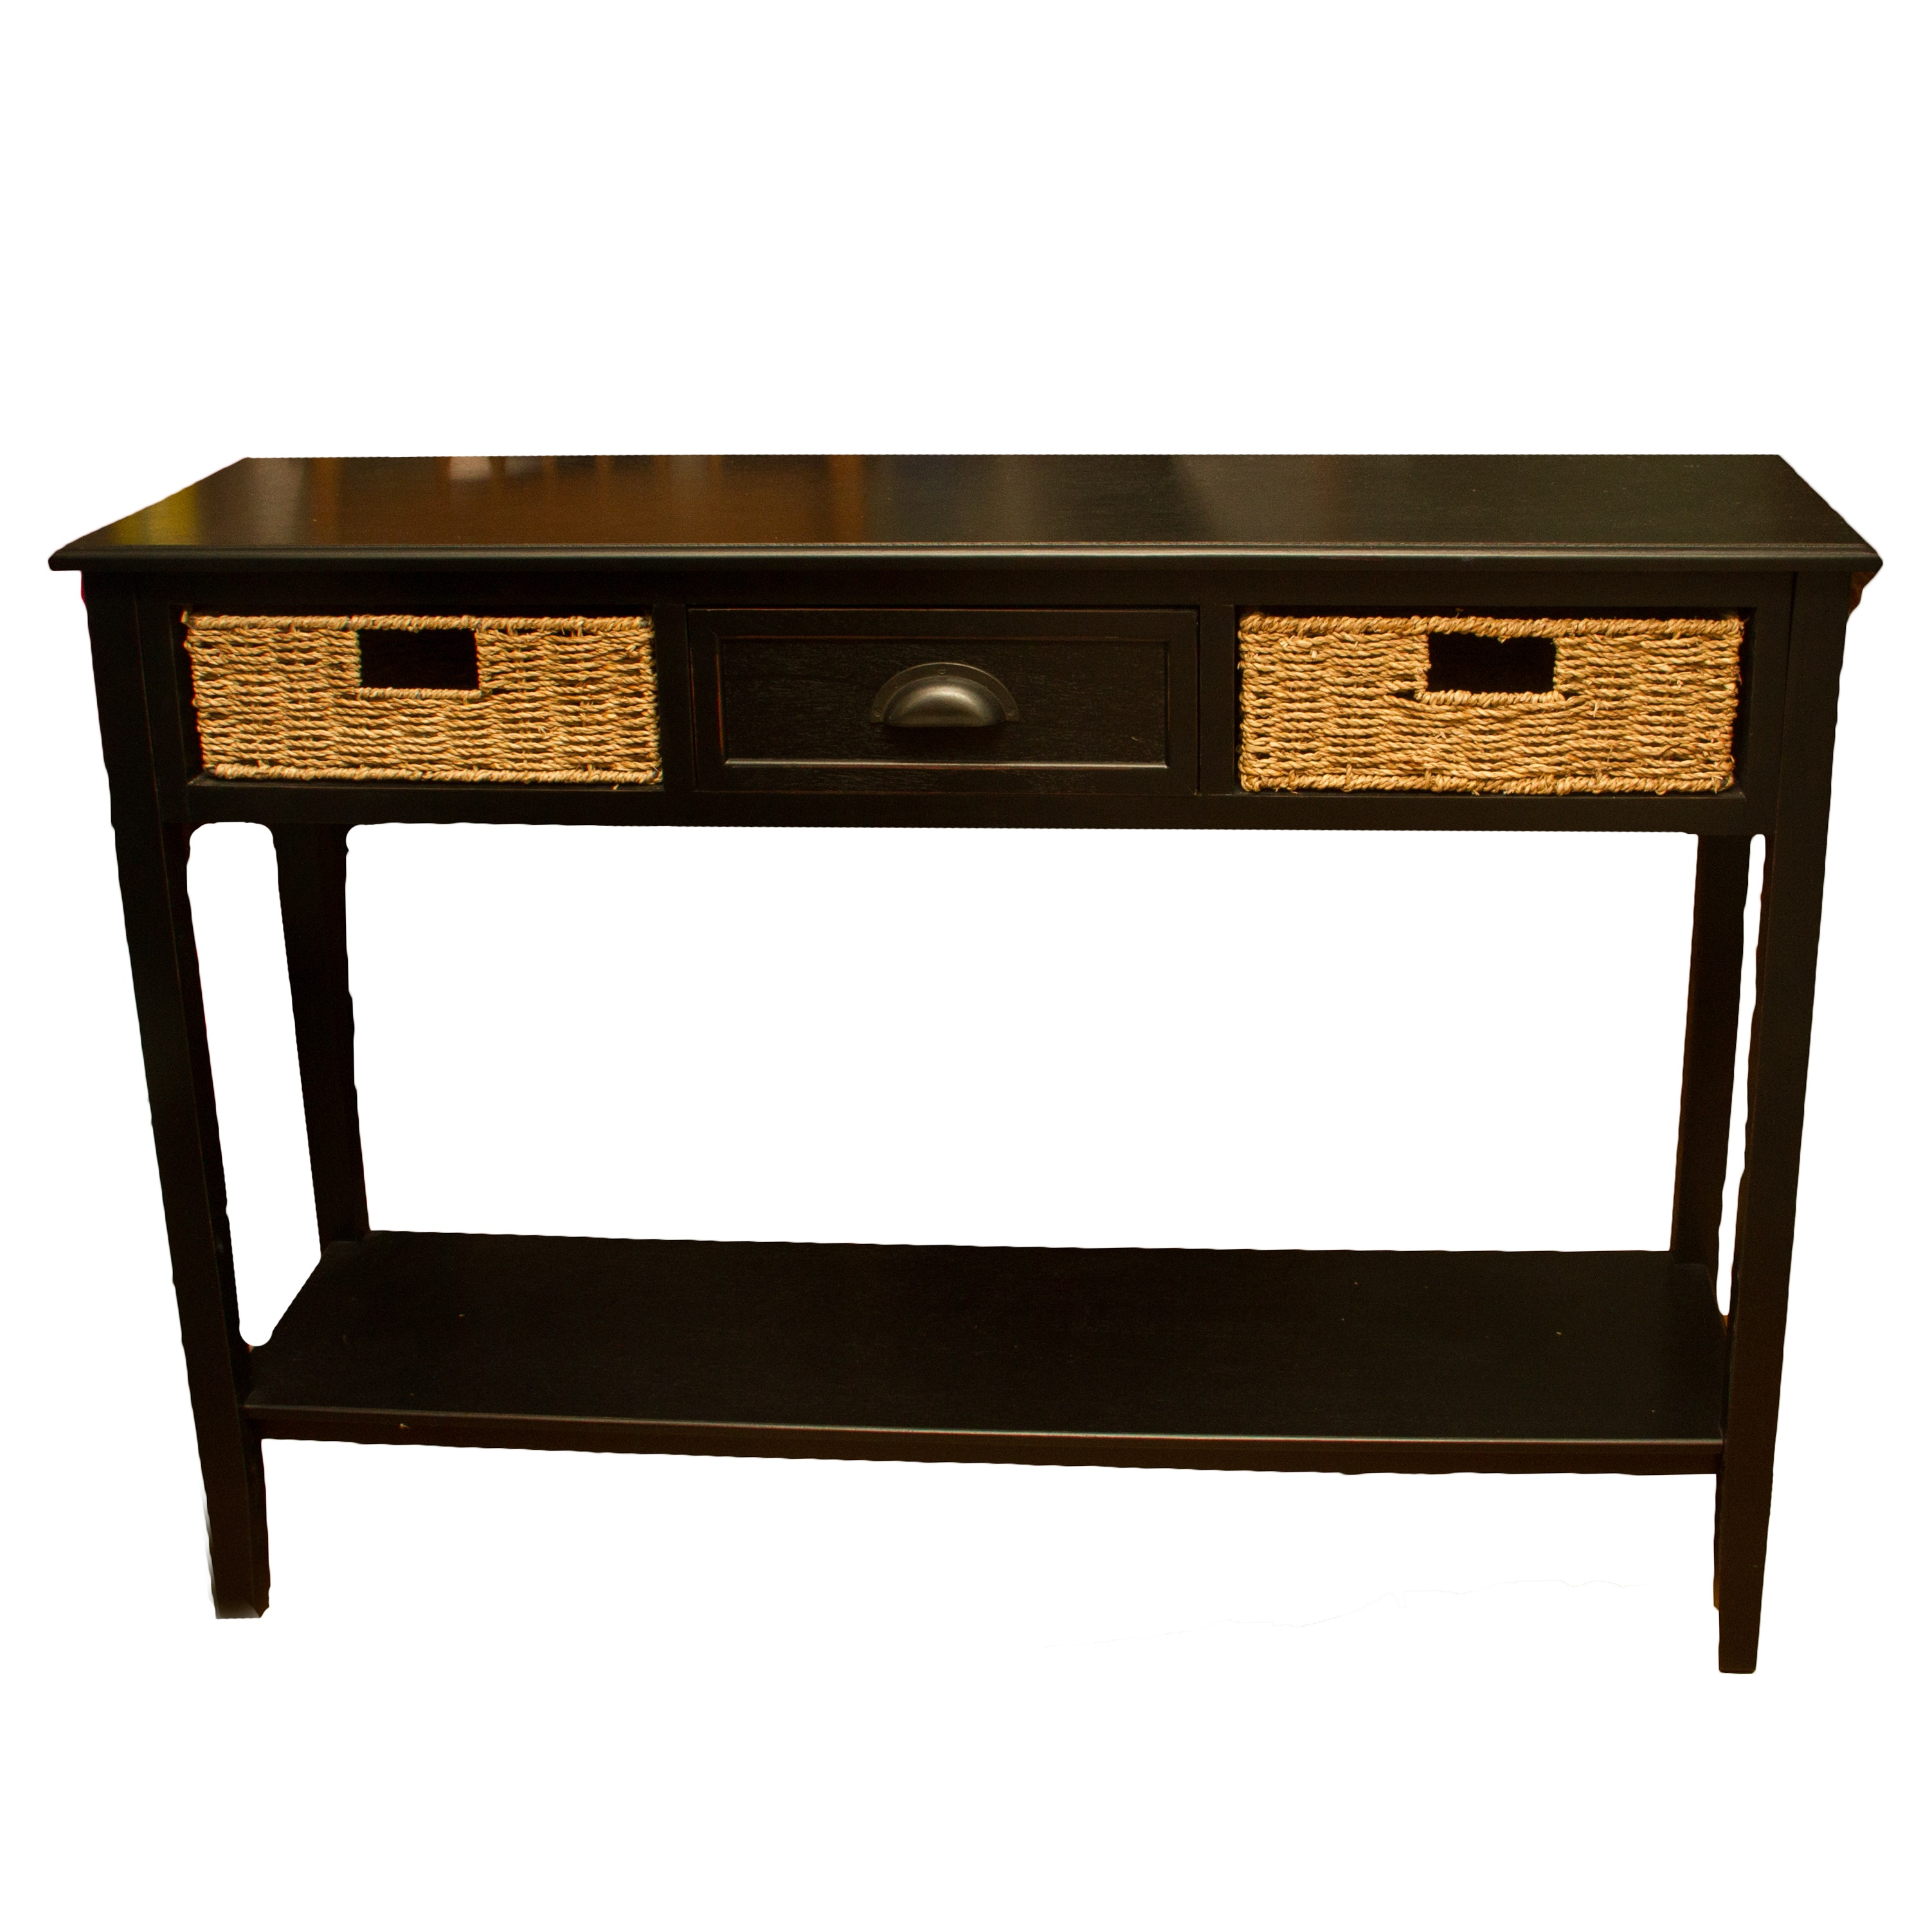 Black Console Table With Wicker Baskets Ebth